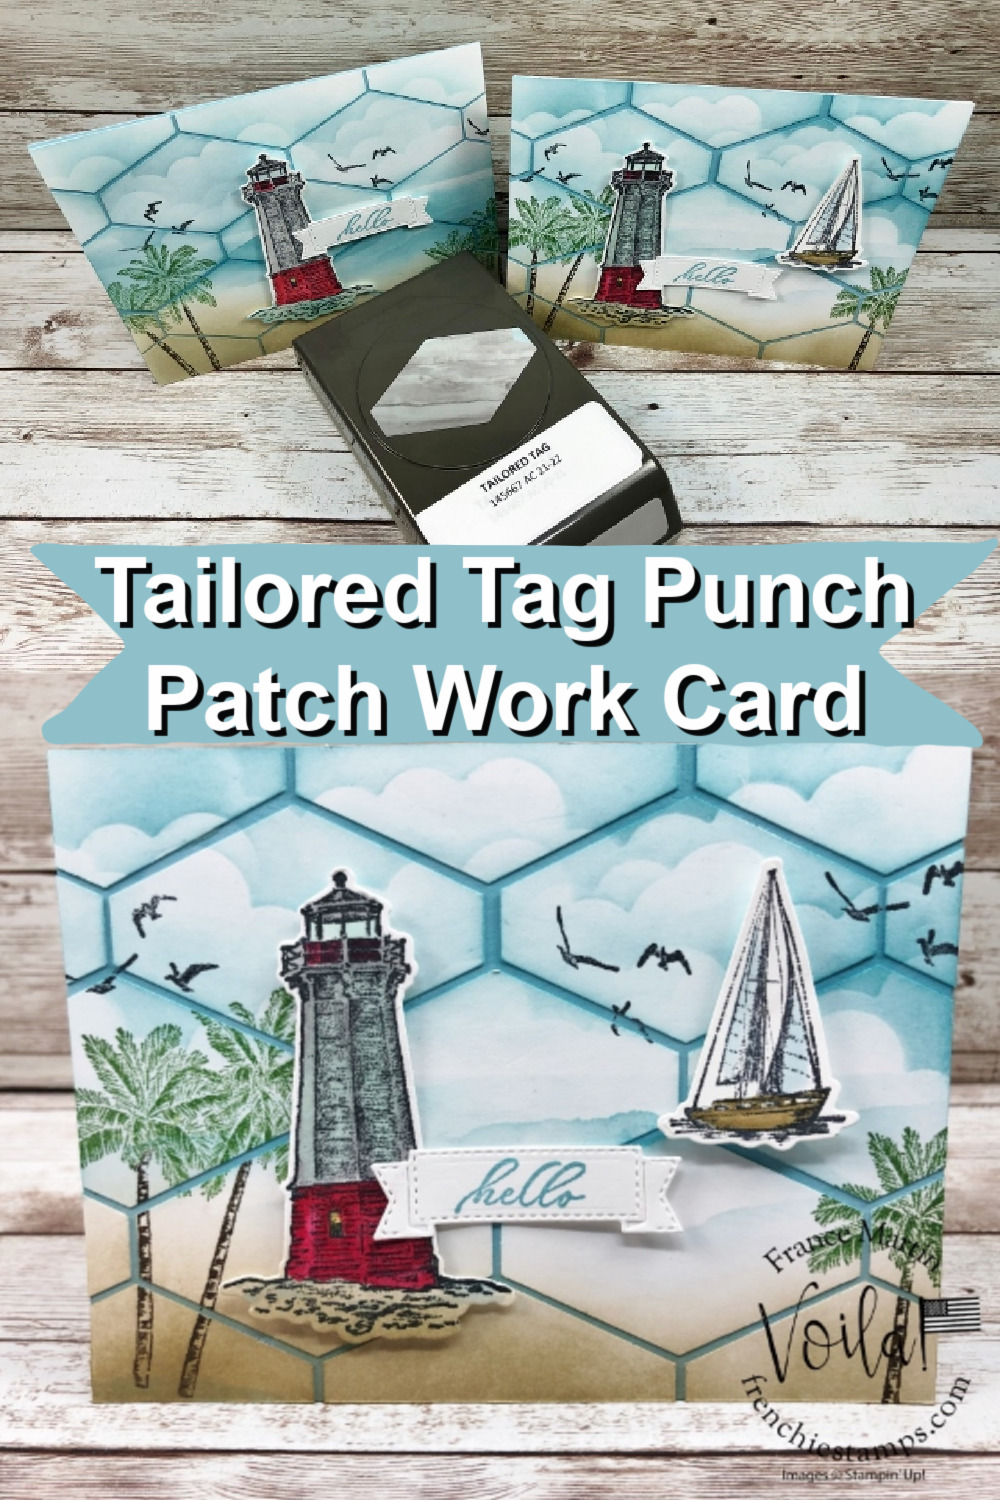 Tailored Tag Punch Ocean Scenery Patchwork Greeting Card